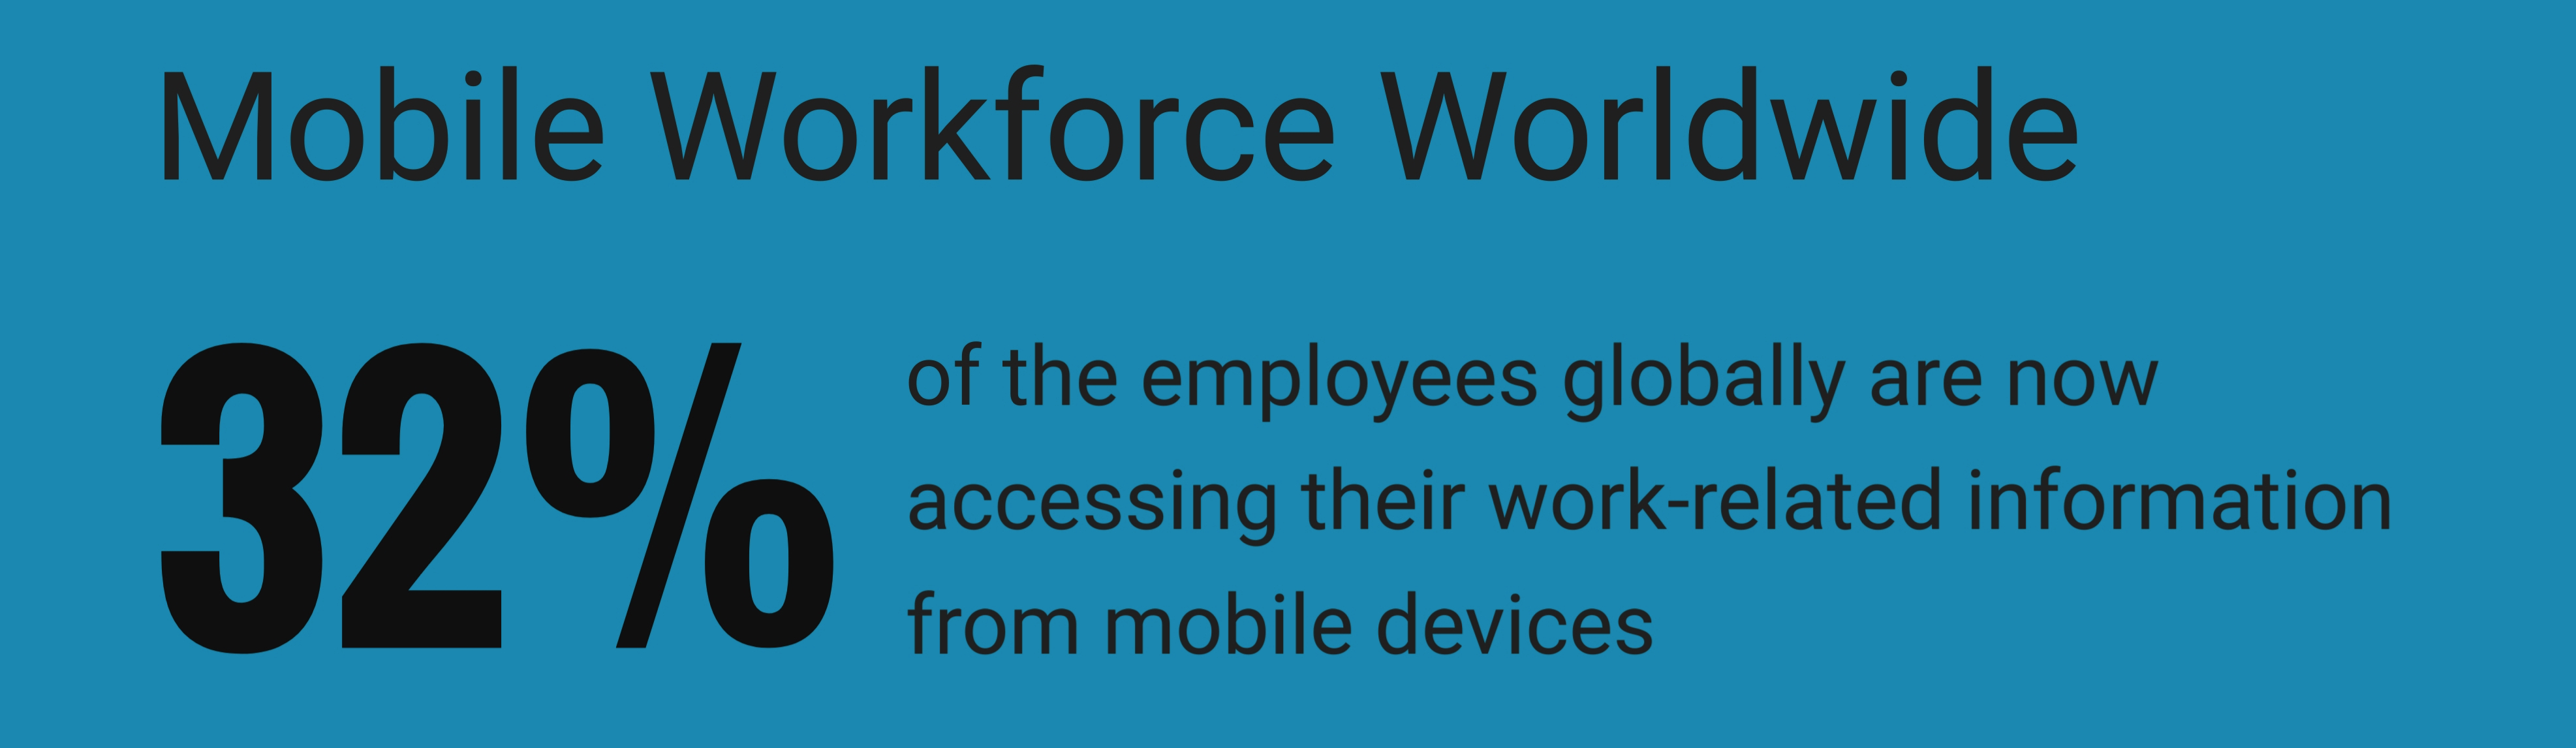 mobile workforce stats